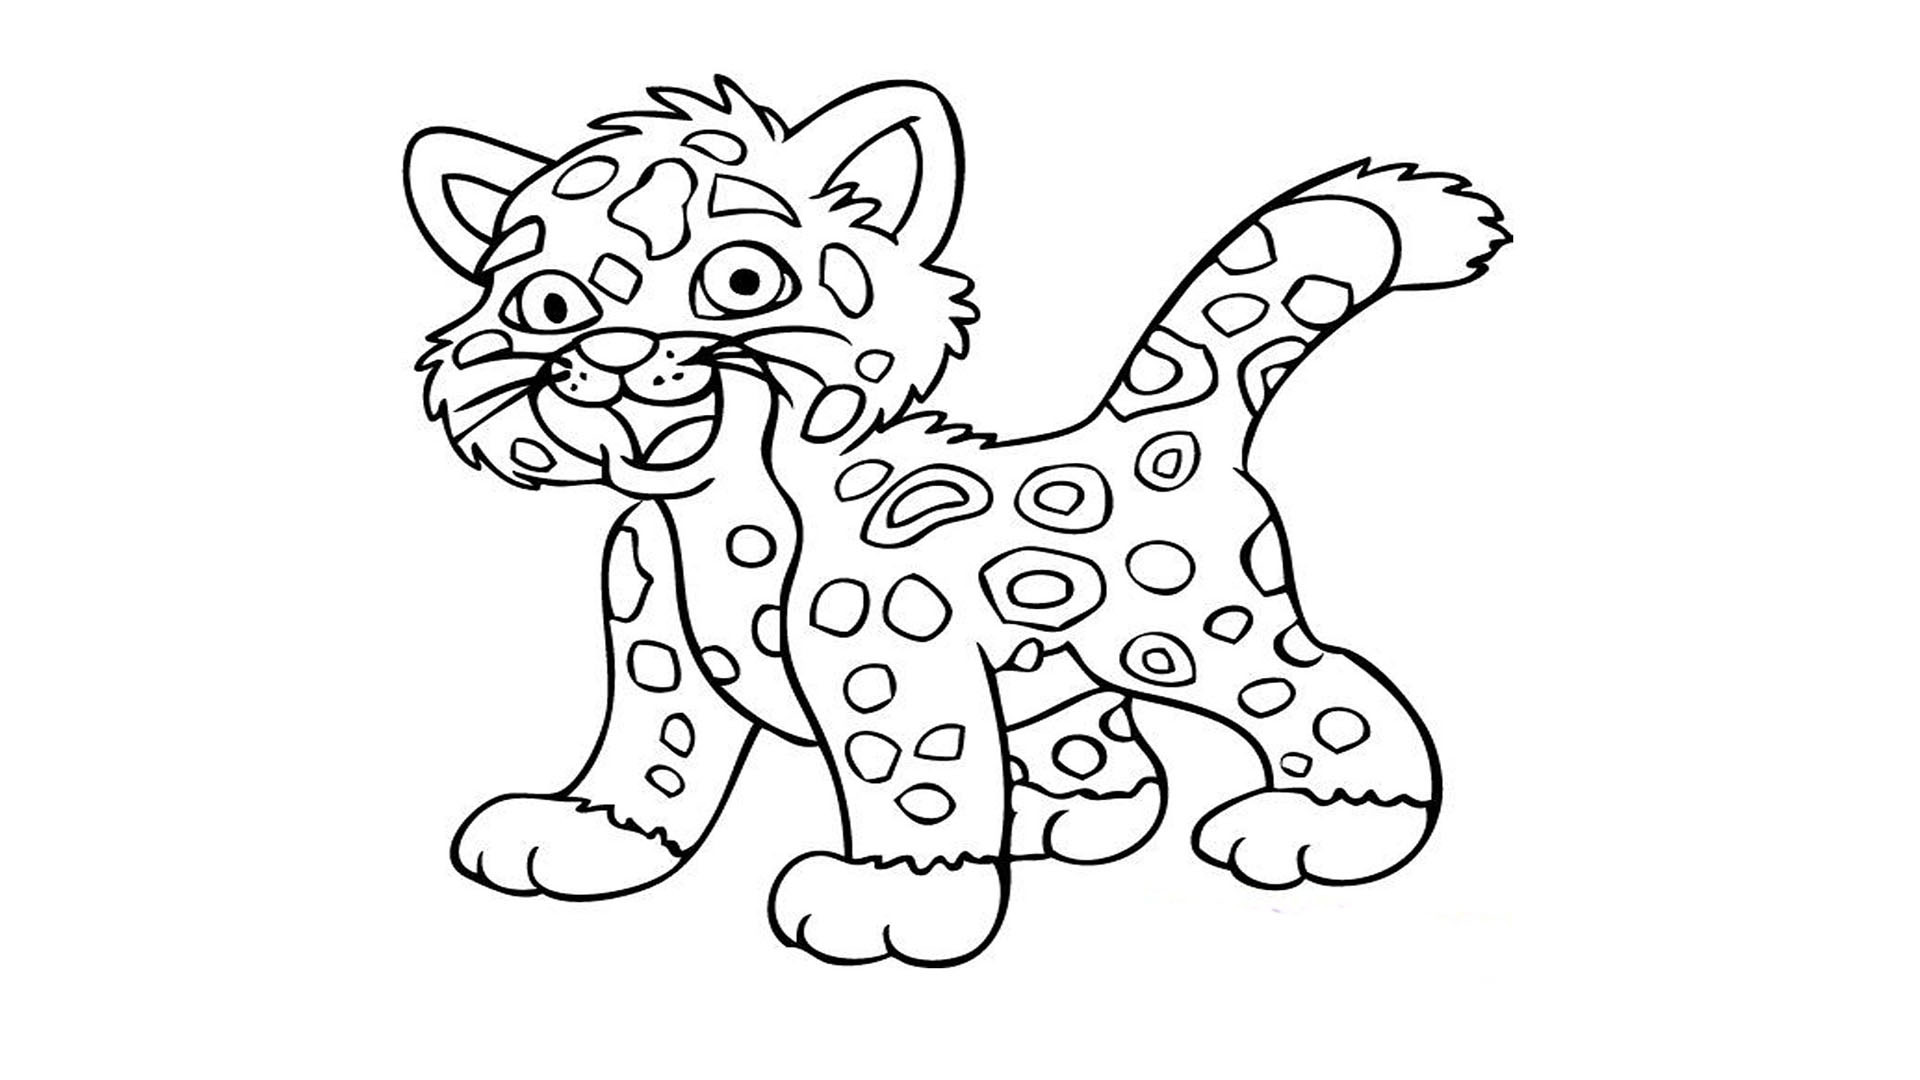 1920x1080 Daniel Tiger Coloring Pages Awesome Tiger Without Stripes Coloring